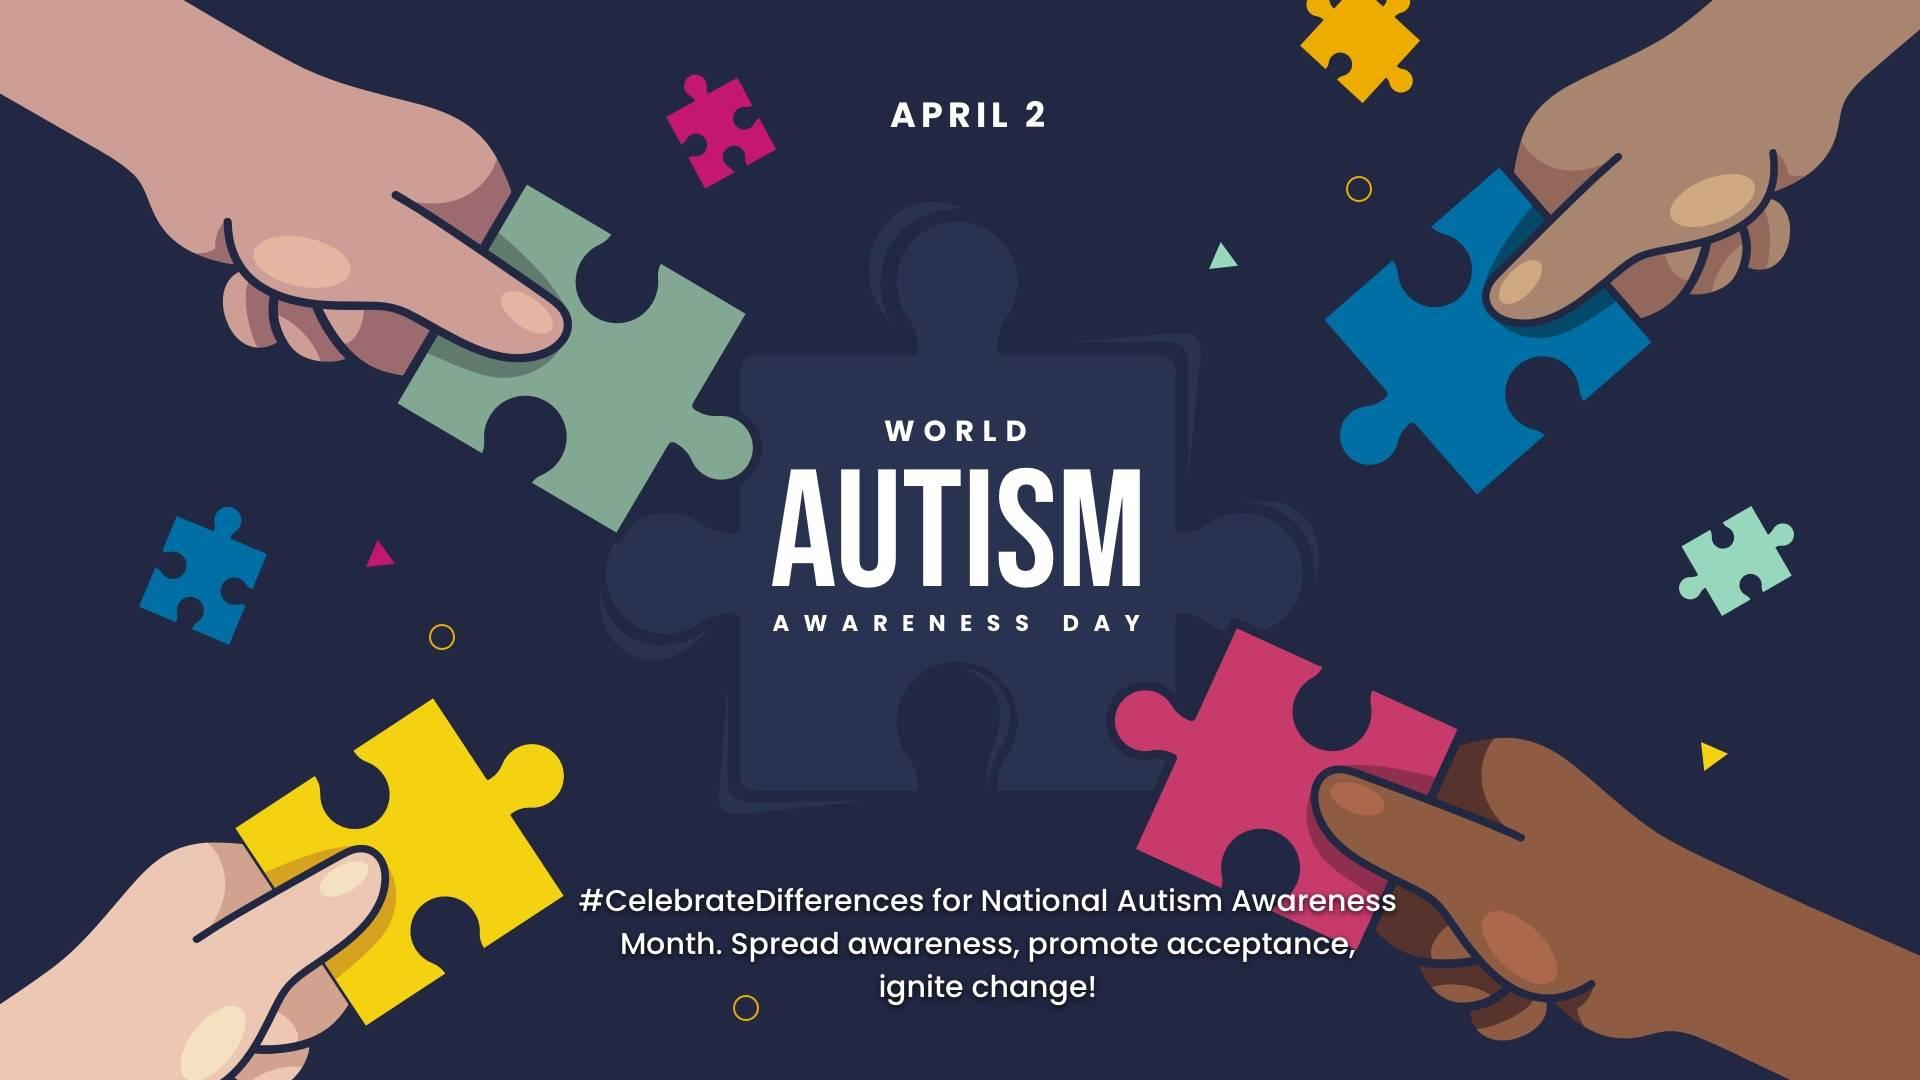 World Autism Awareness Day Digital Signage Template